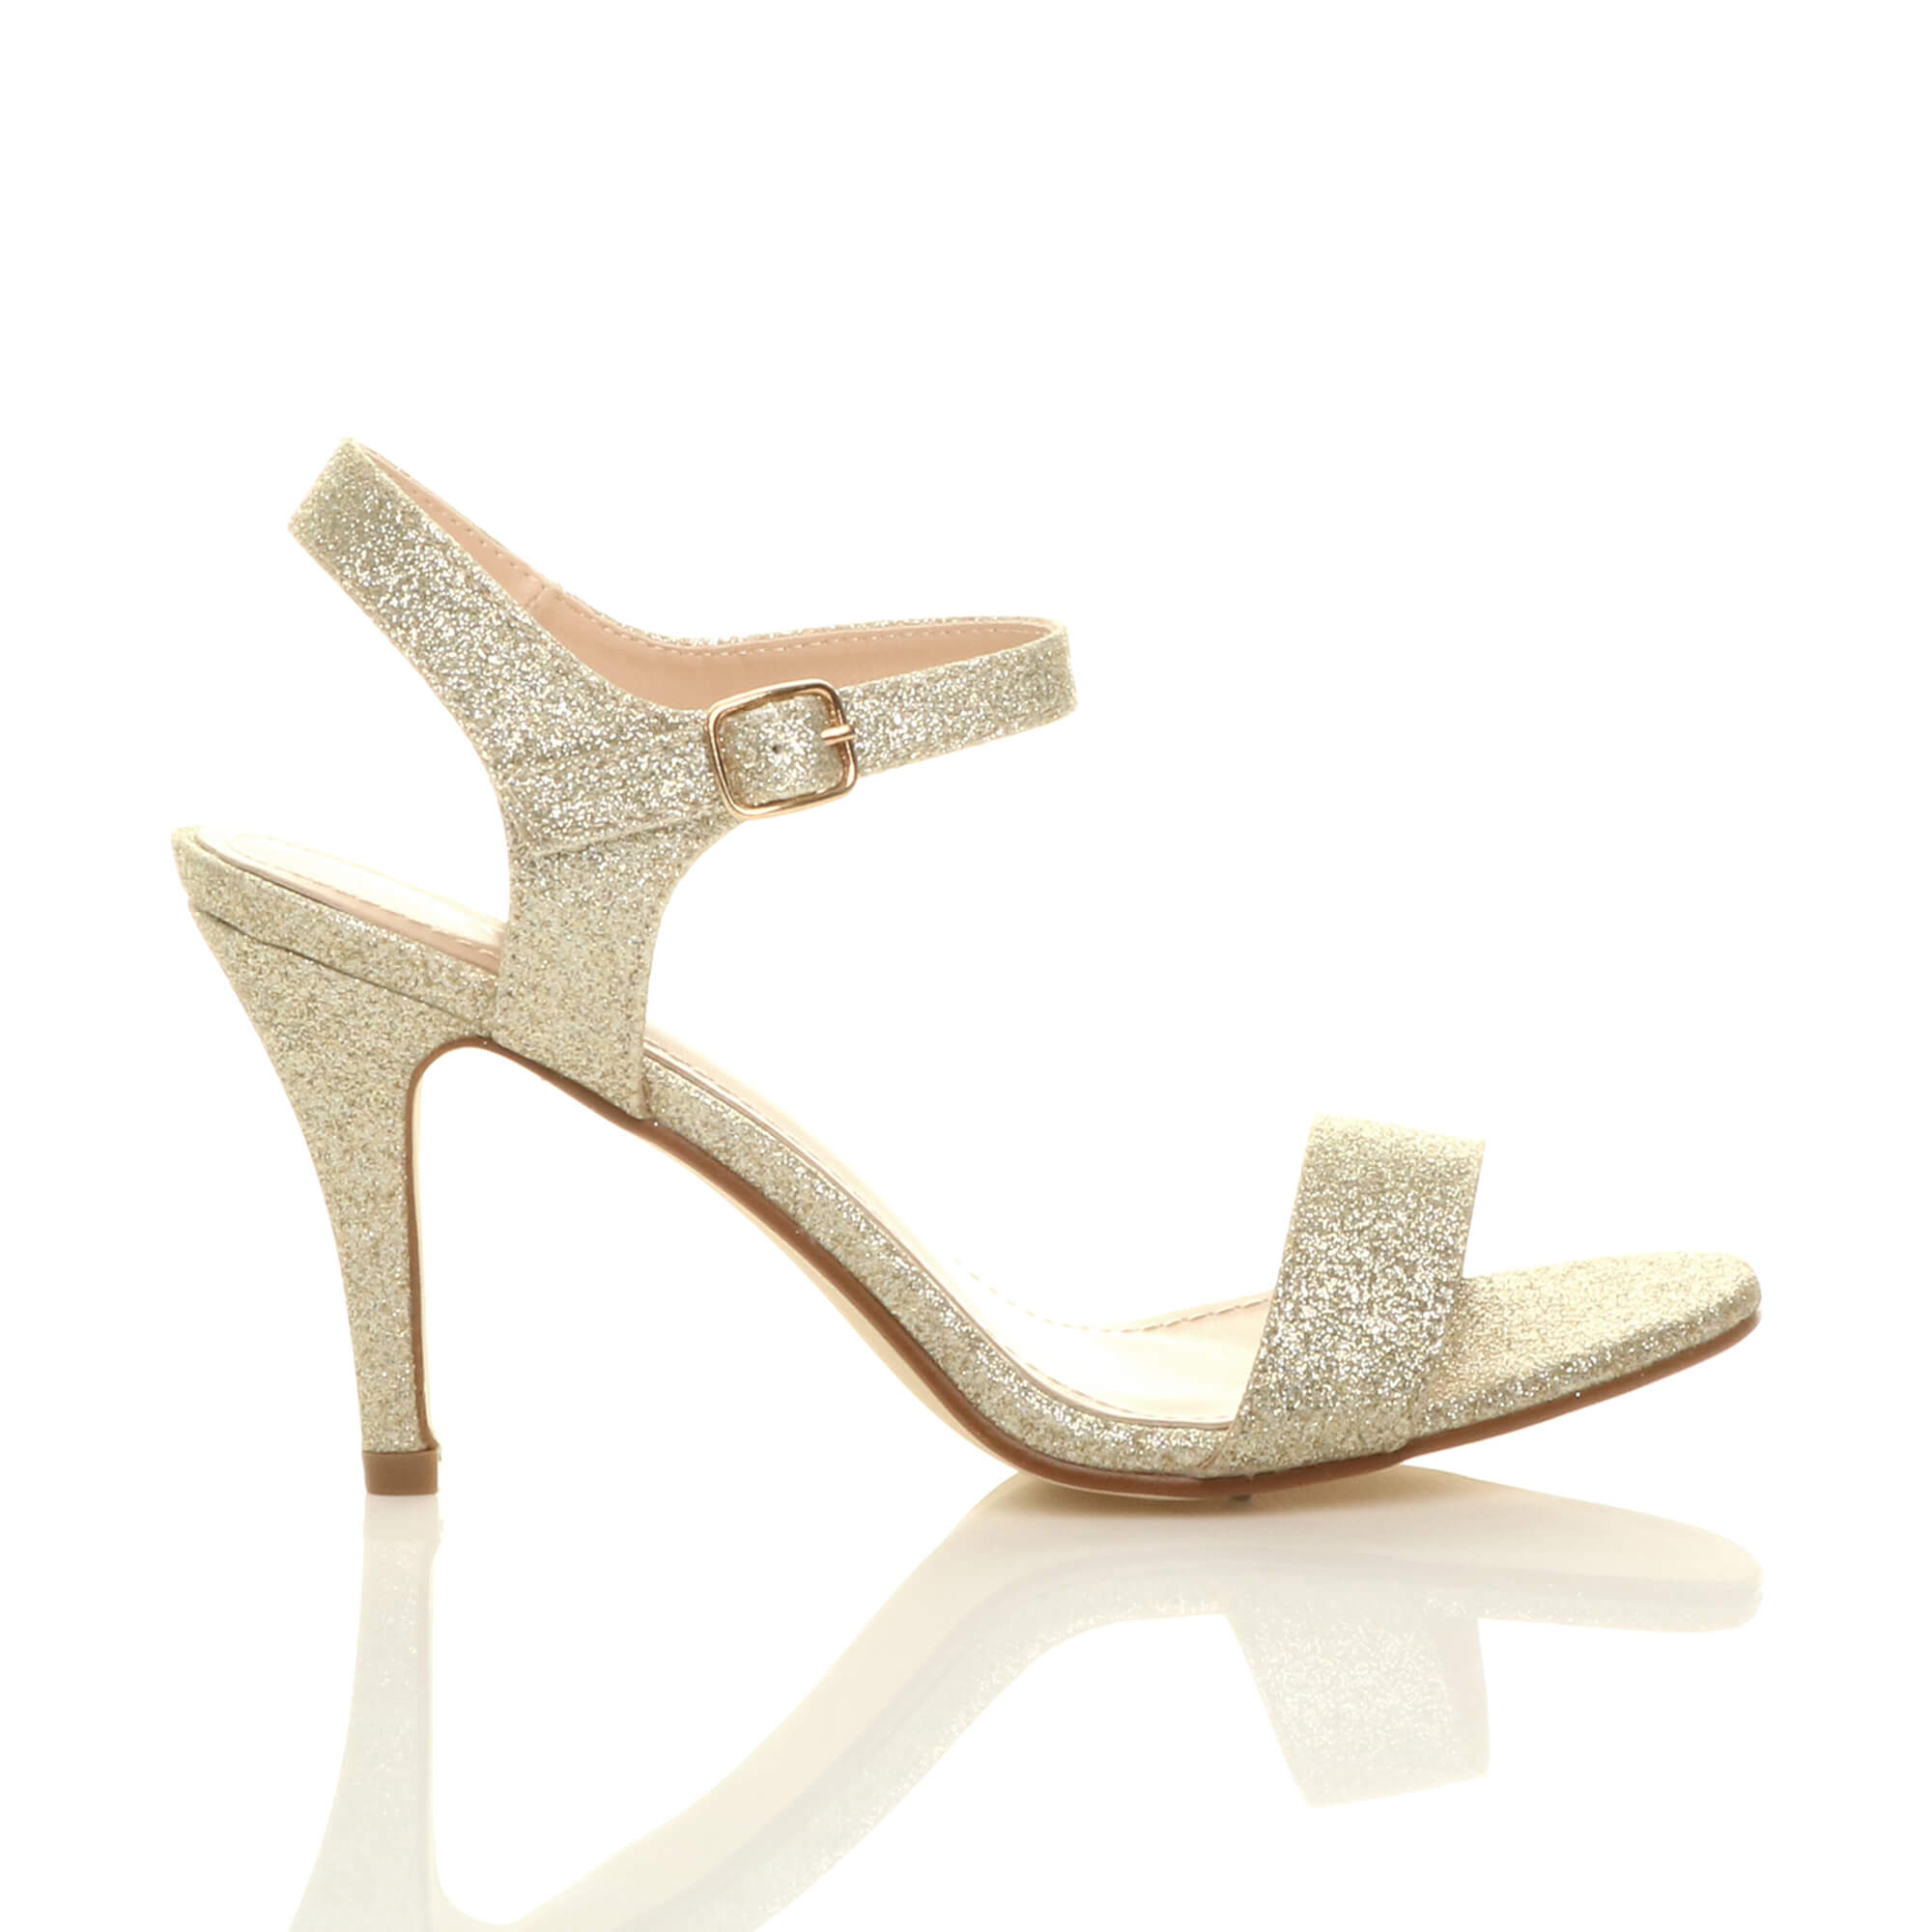 WOMENS-LADIES-HIGH-HEEL-BUCKLE-STRAPPY-BASIC-BARELY-THERE-SANDALS-SHOES-SIZE thumbnail 38